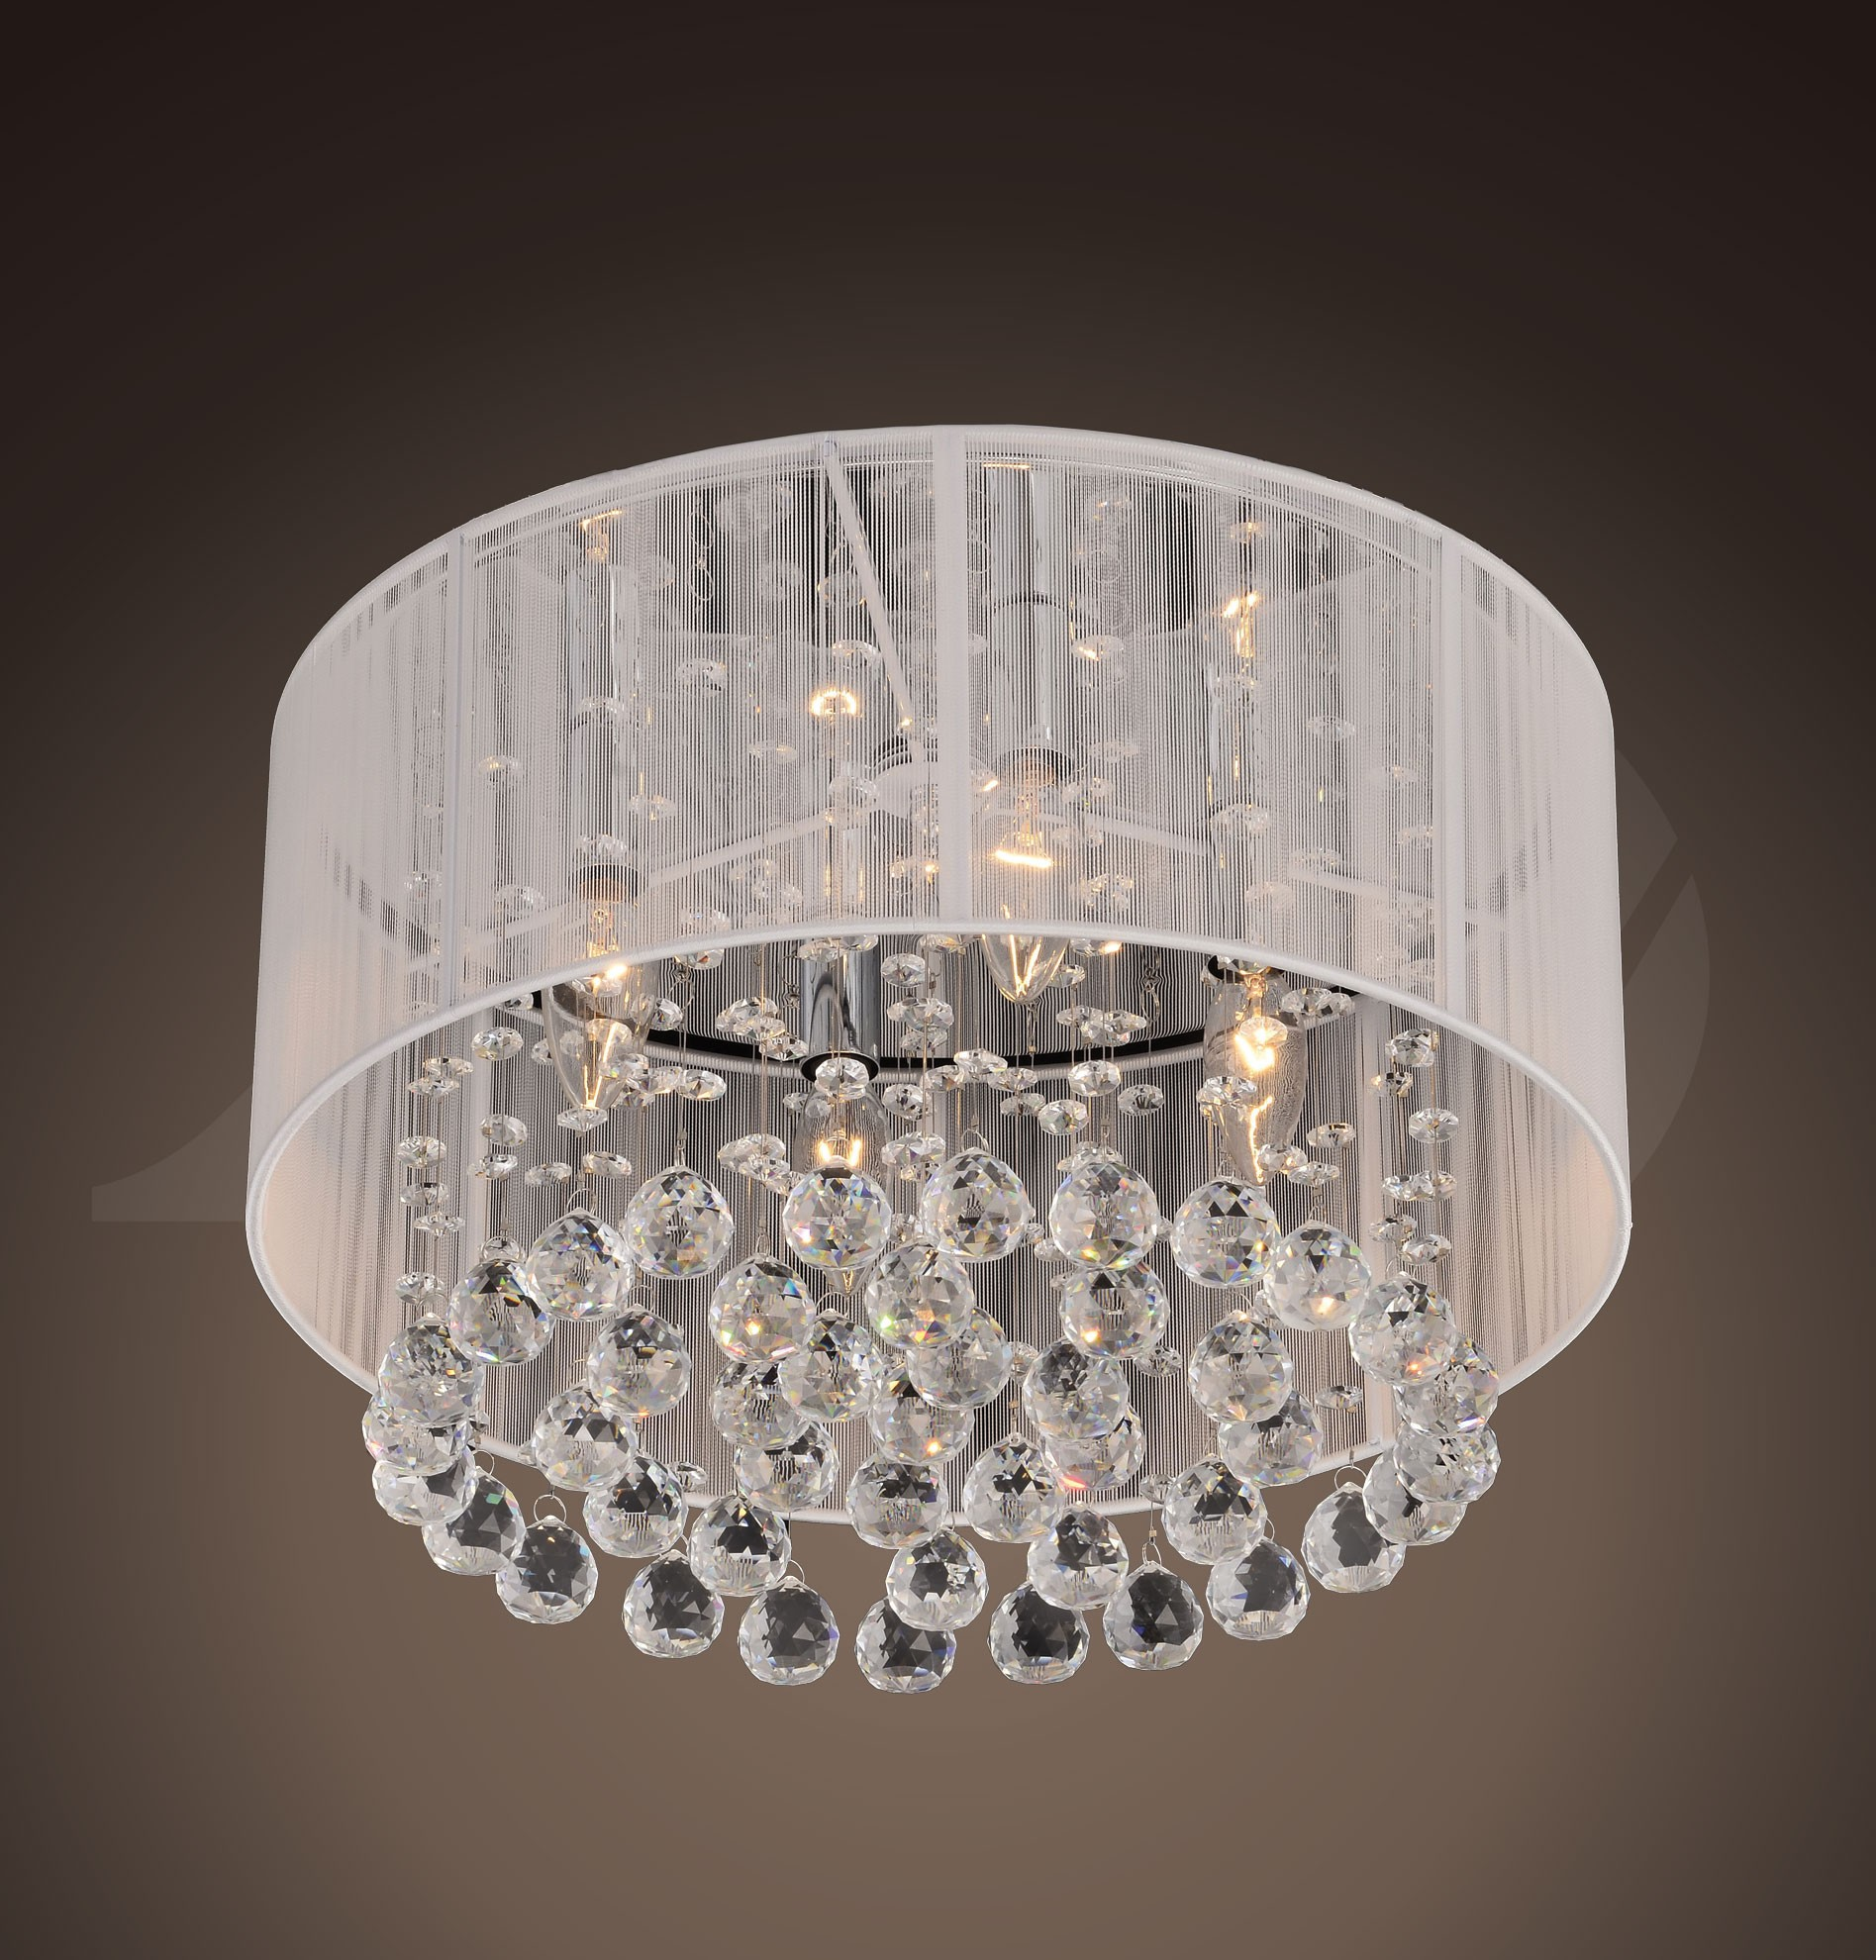 Jenna 4 light chrome and white crystal ceiling mount chandelier 9 jenna 4 light chrome and white crystal ceiling mount chandelier 9 h x arubaitofo Choice Image